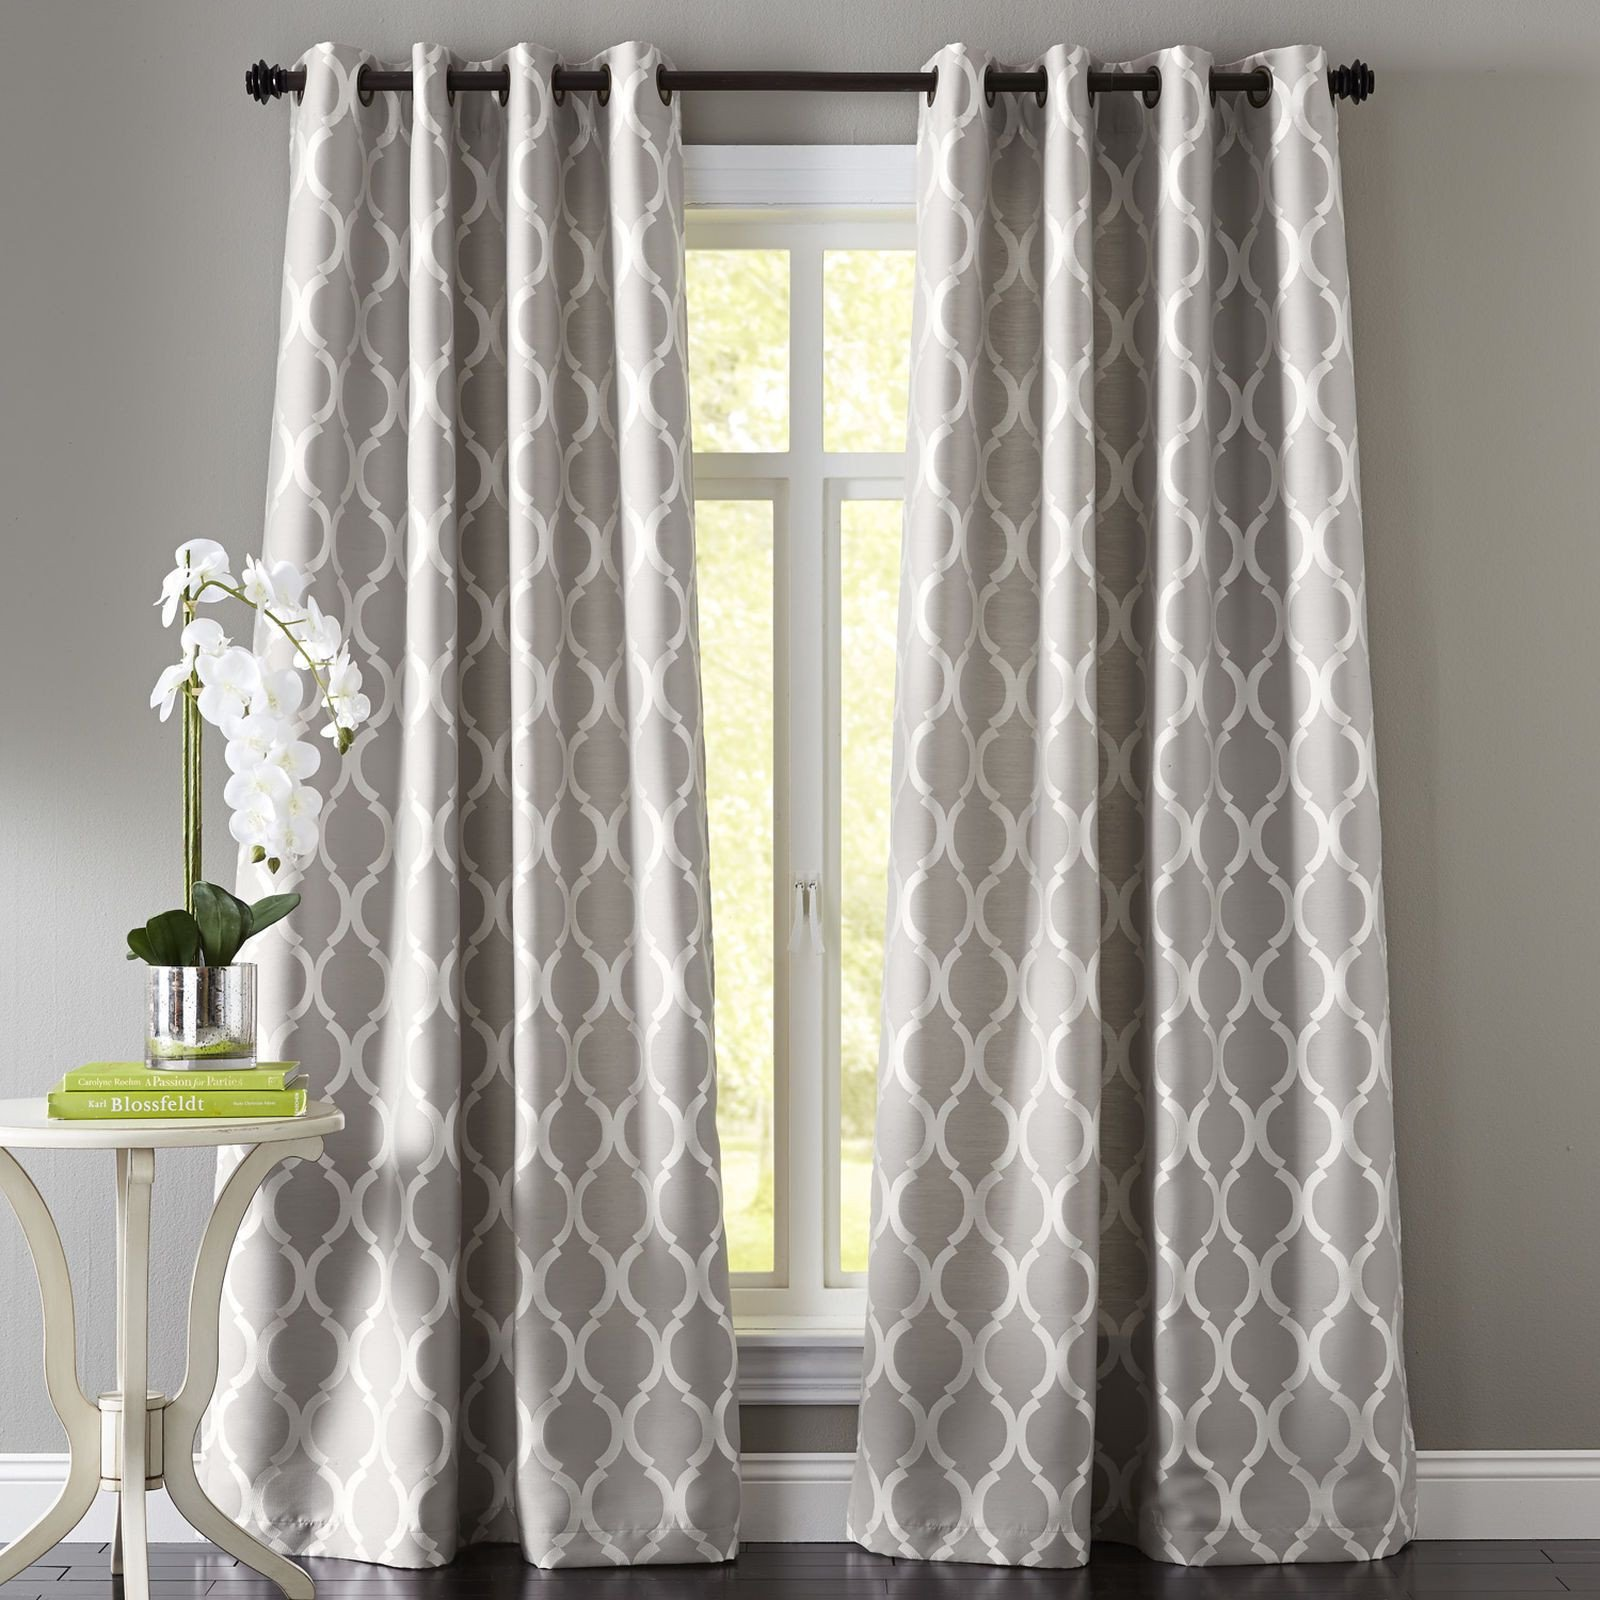 Grey Curtains for Bedroom Inspirational Moorish Tile Grommet Gray Curtain Home